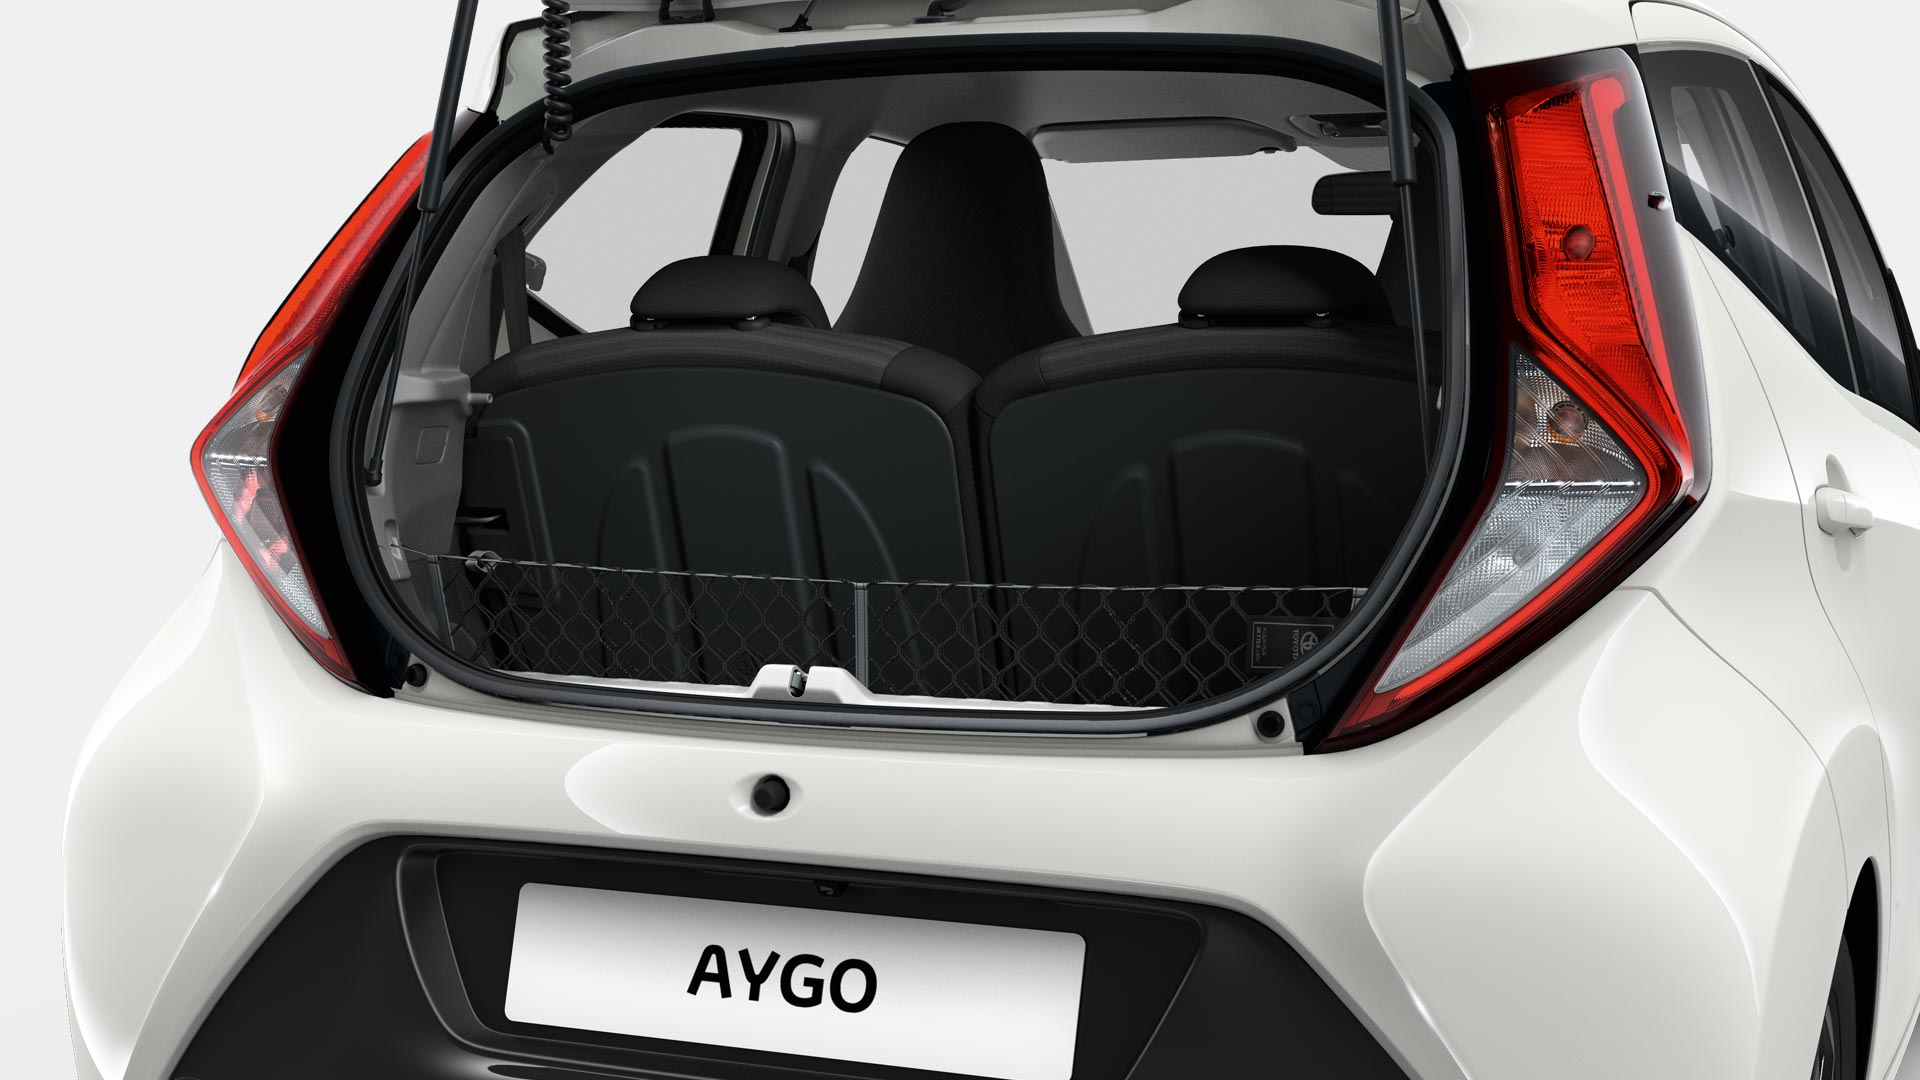 photo team colin toyota nouvelle aygo business bagneux